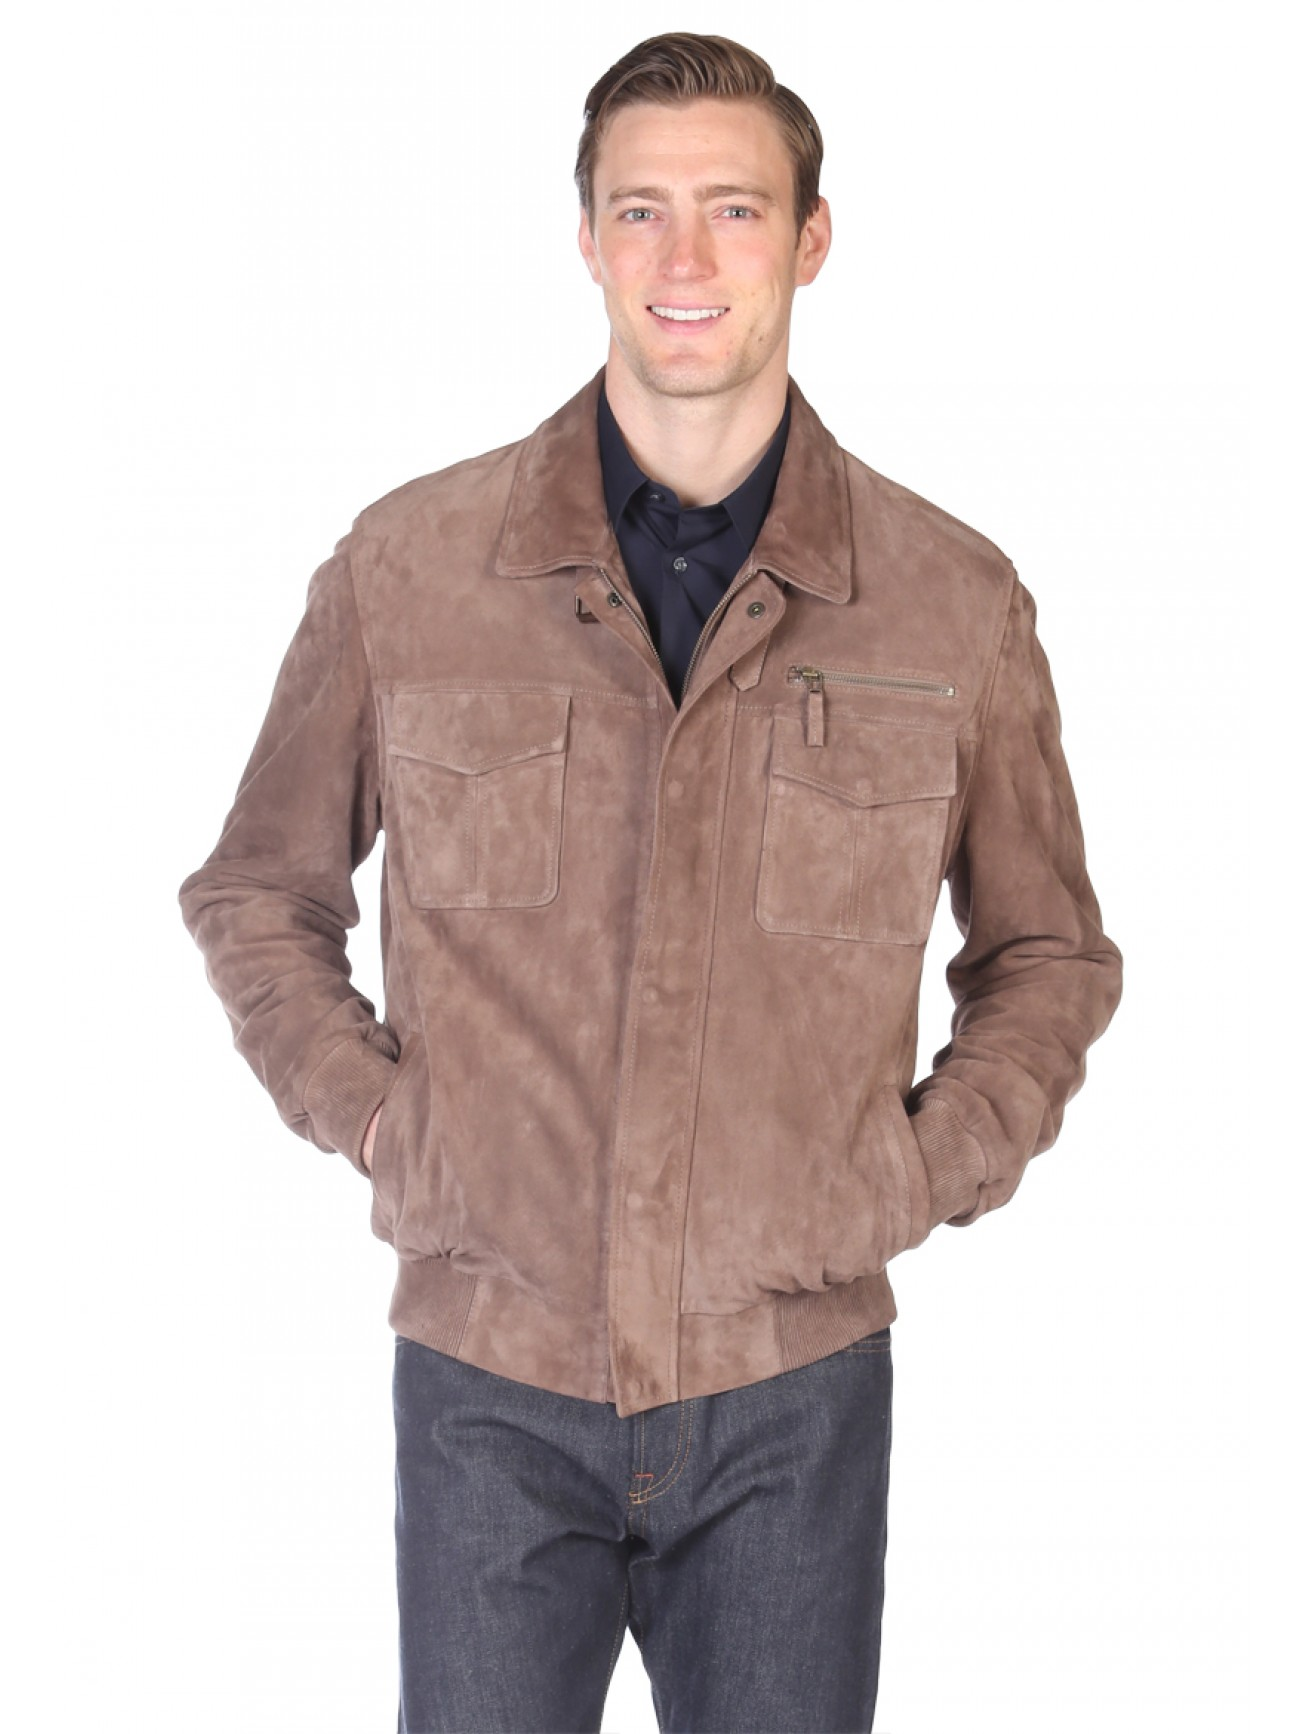 anaheim men Local mens clothing in anaheim,ca with maps, local business reviews, directions and more.